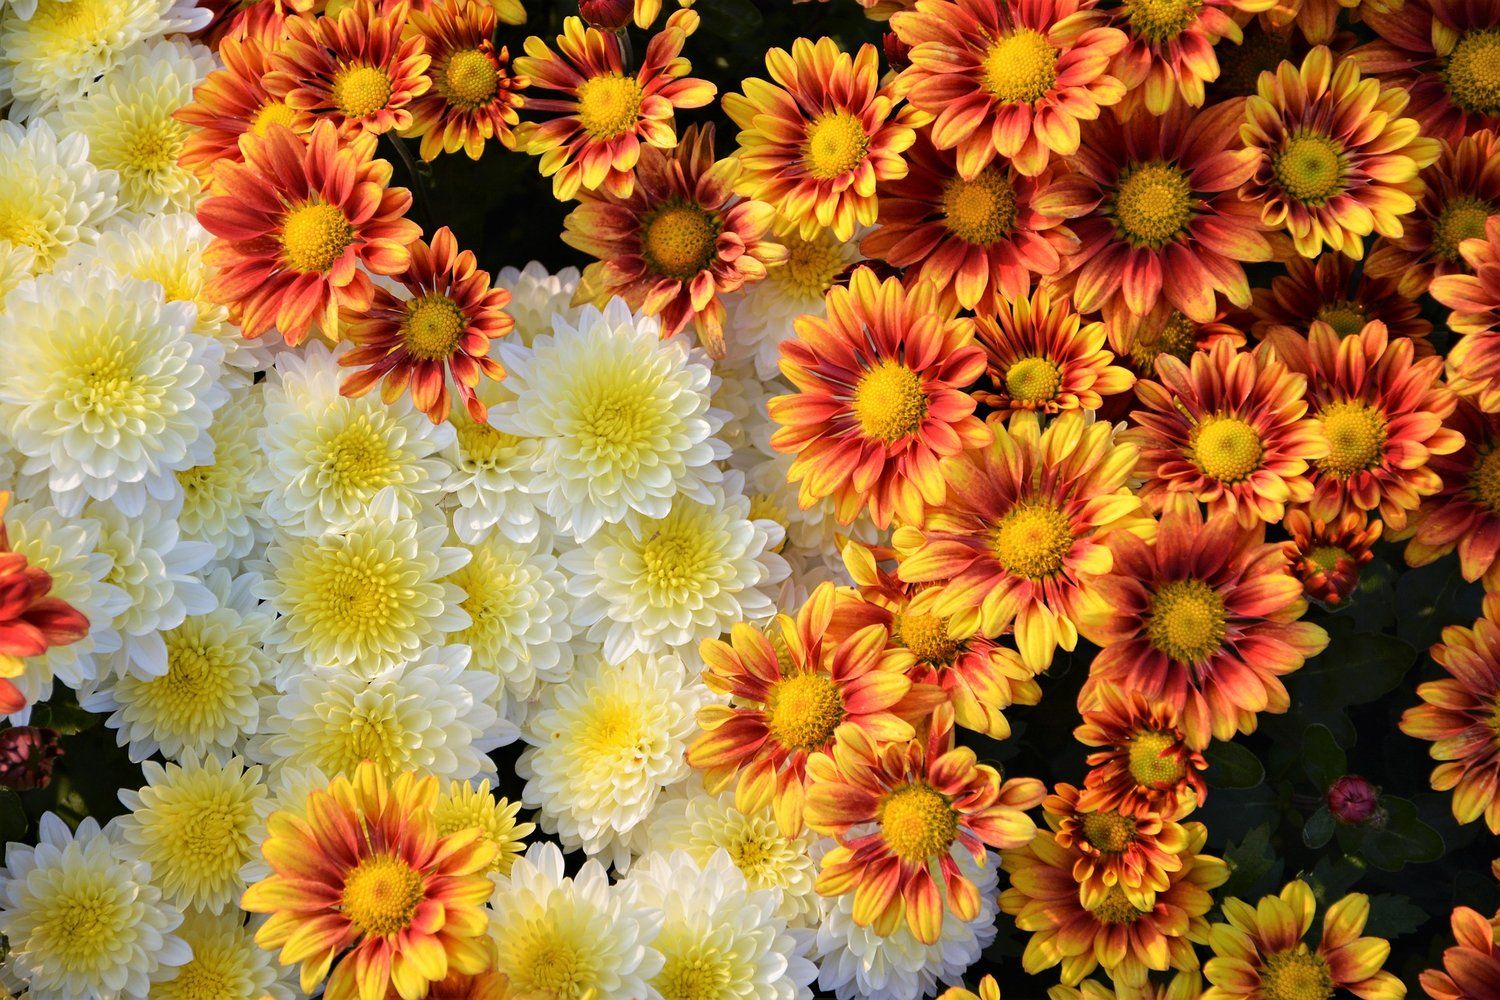 FALL COLOR — Looking for fall color in your landscape?  Try bright and beautiful chrysanthemums which come in a variety of often vibrant colors.